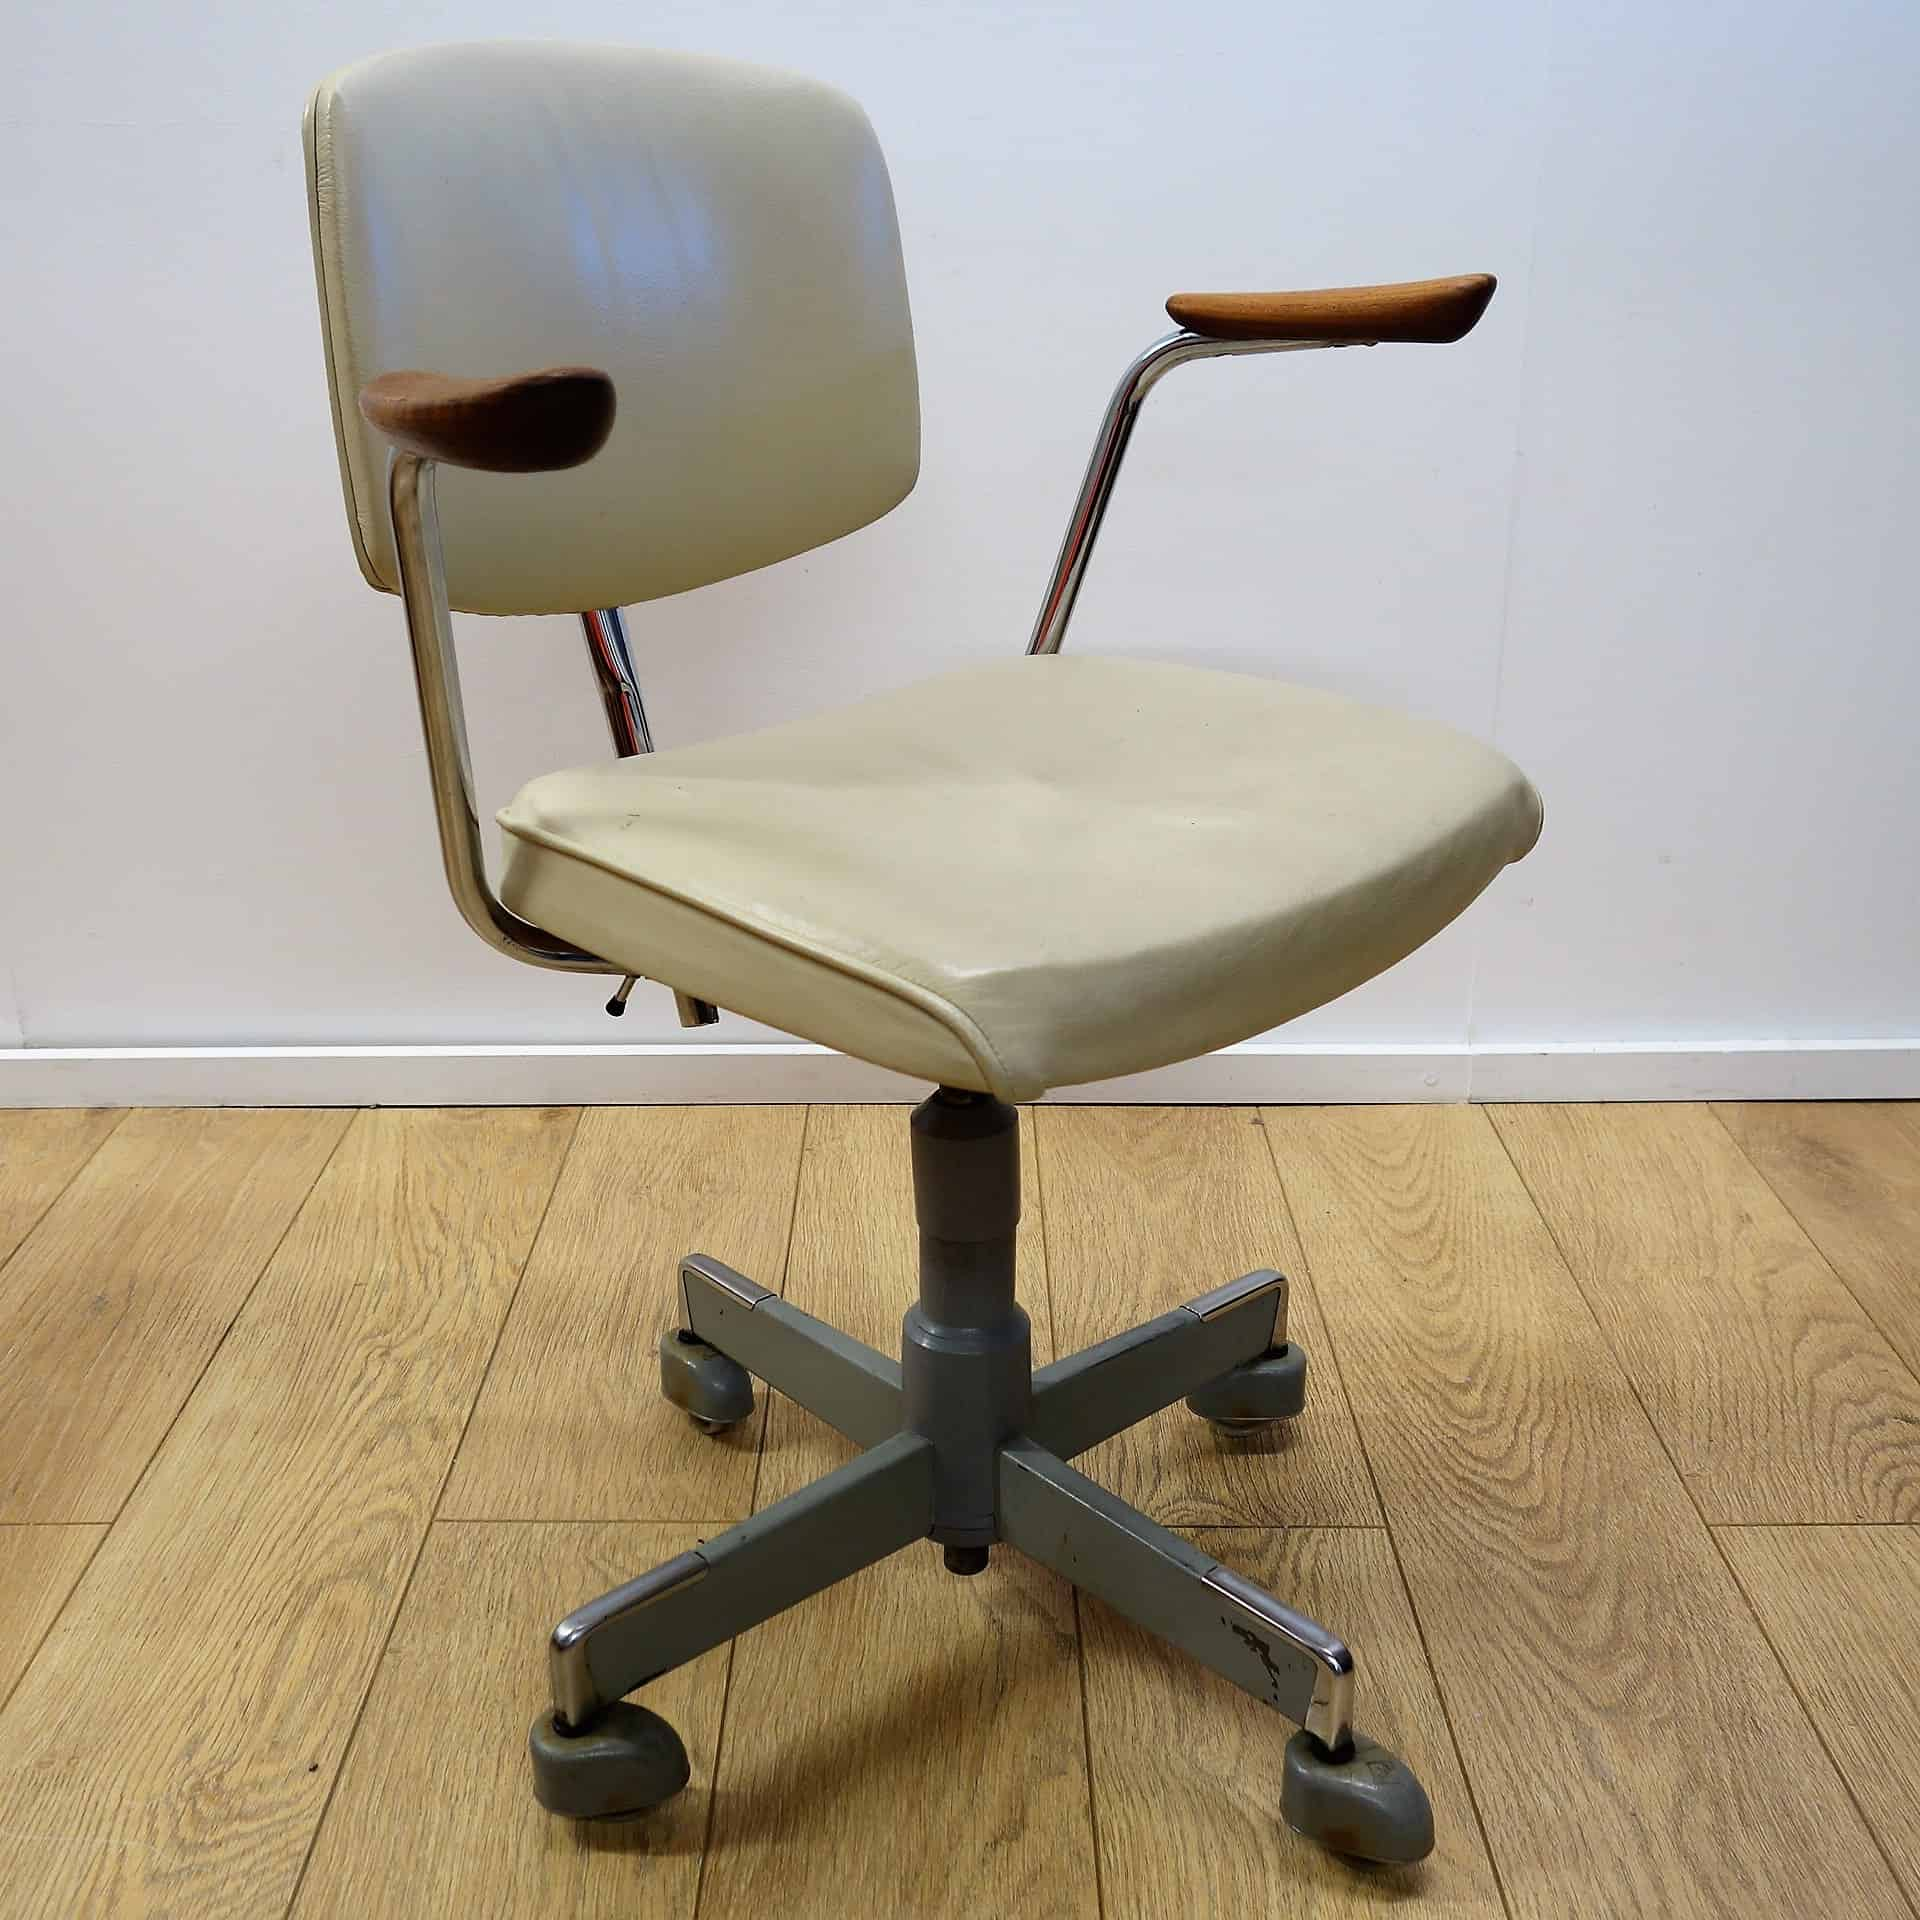 ergonomic chair norway arm cover patterns 1960s leather office by hag mark parrish